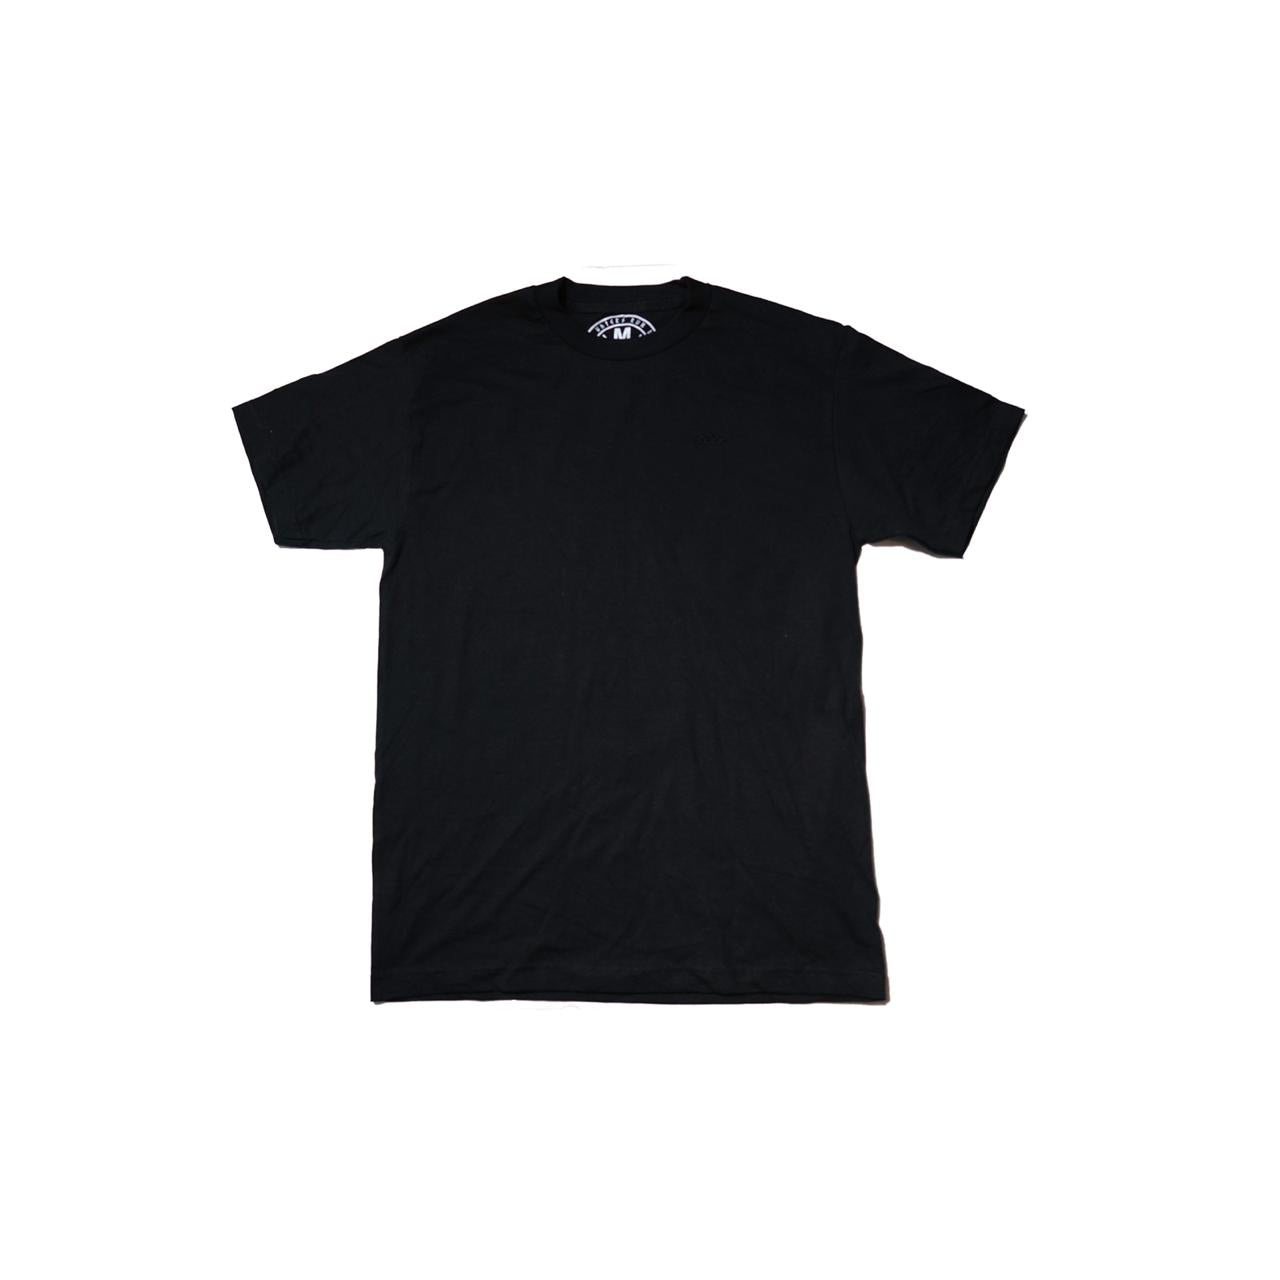 Premium Issue S/S Tee in Black